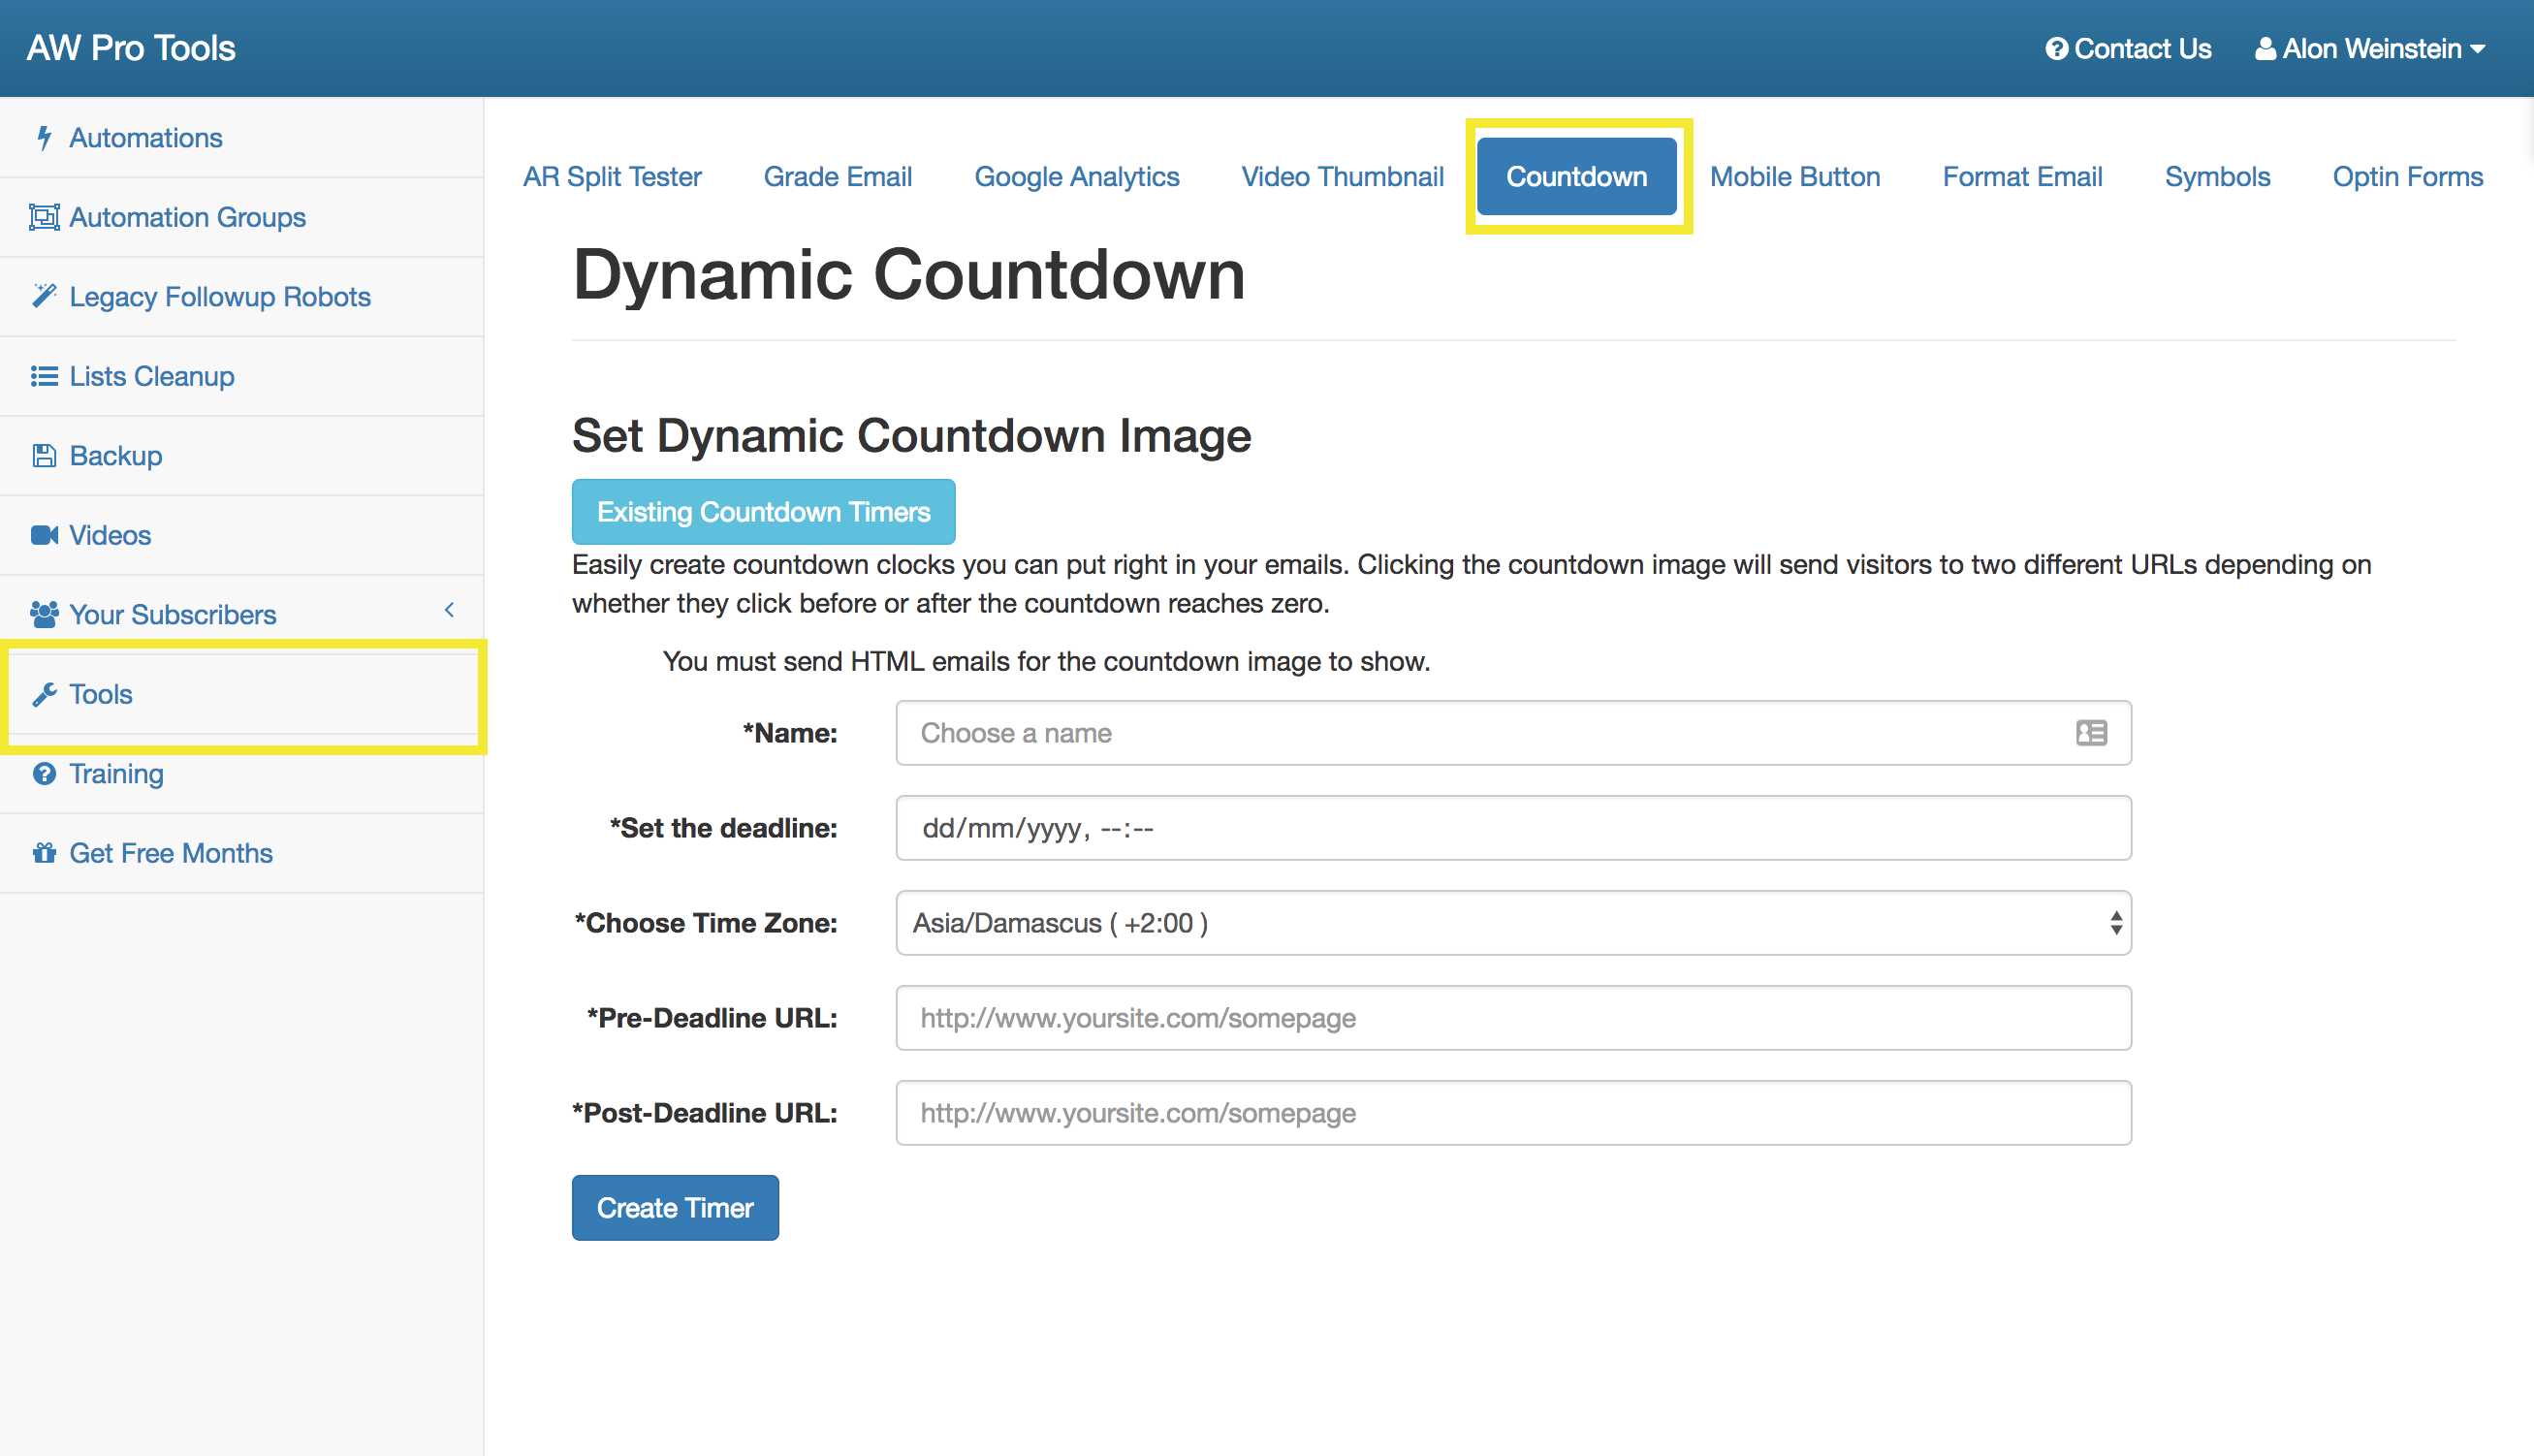 Step 1 - Go to Tools -> Countdown Timer